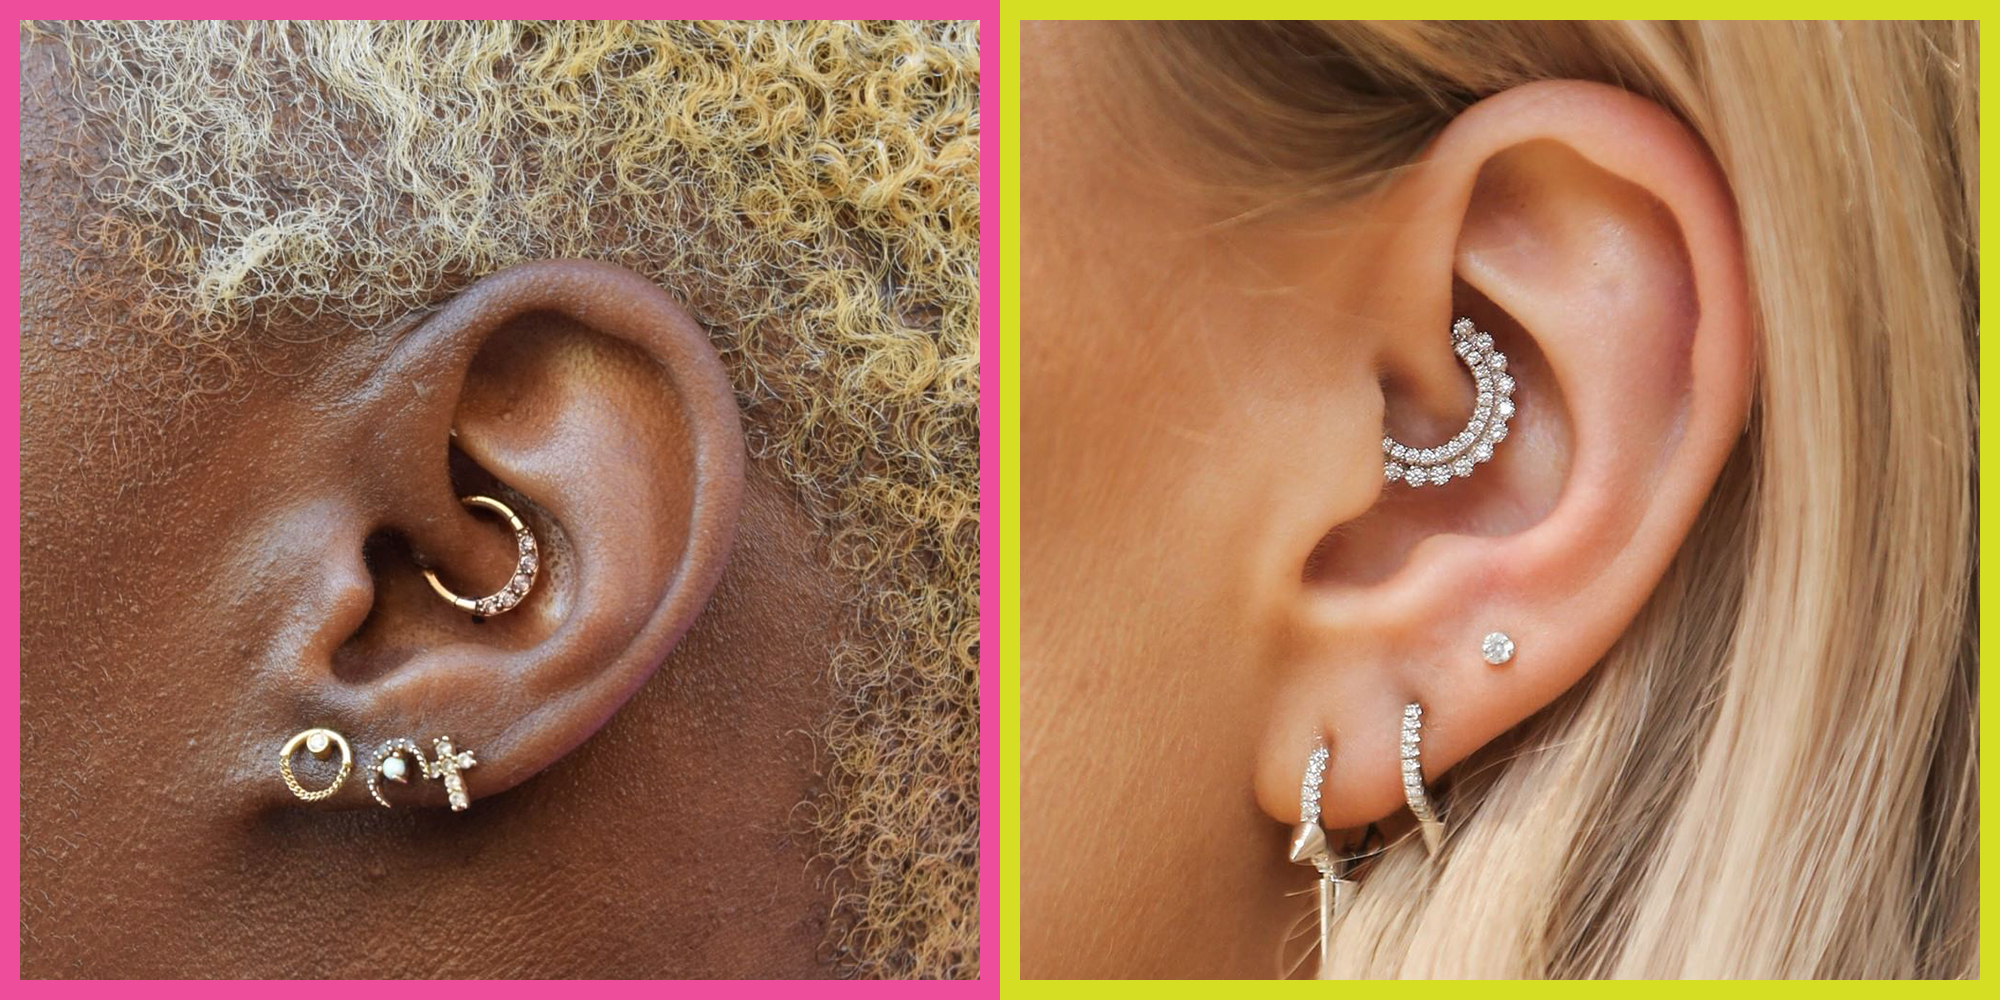 What Are Daith Piercings 2020 Do Daith Piercings Help Migraines